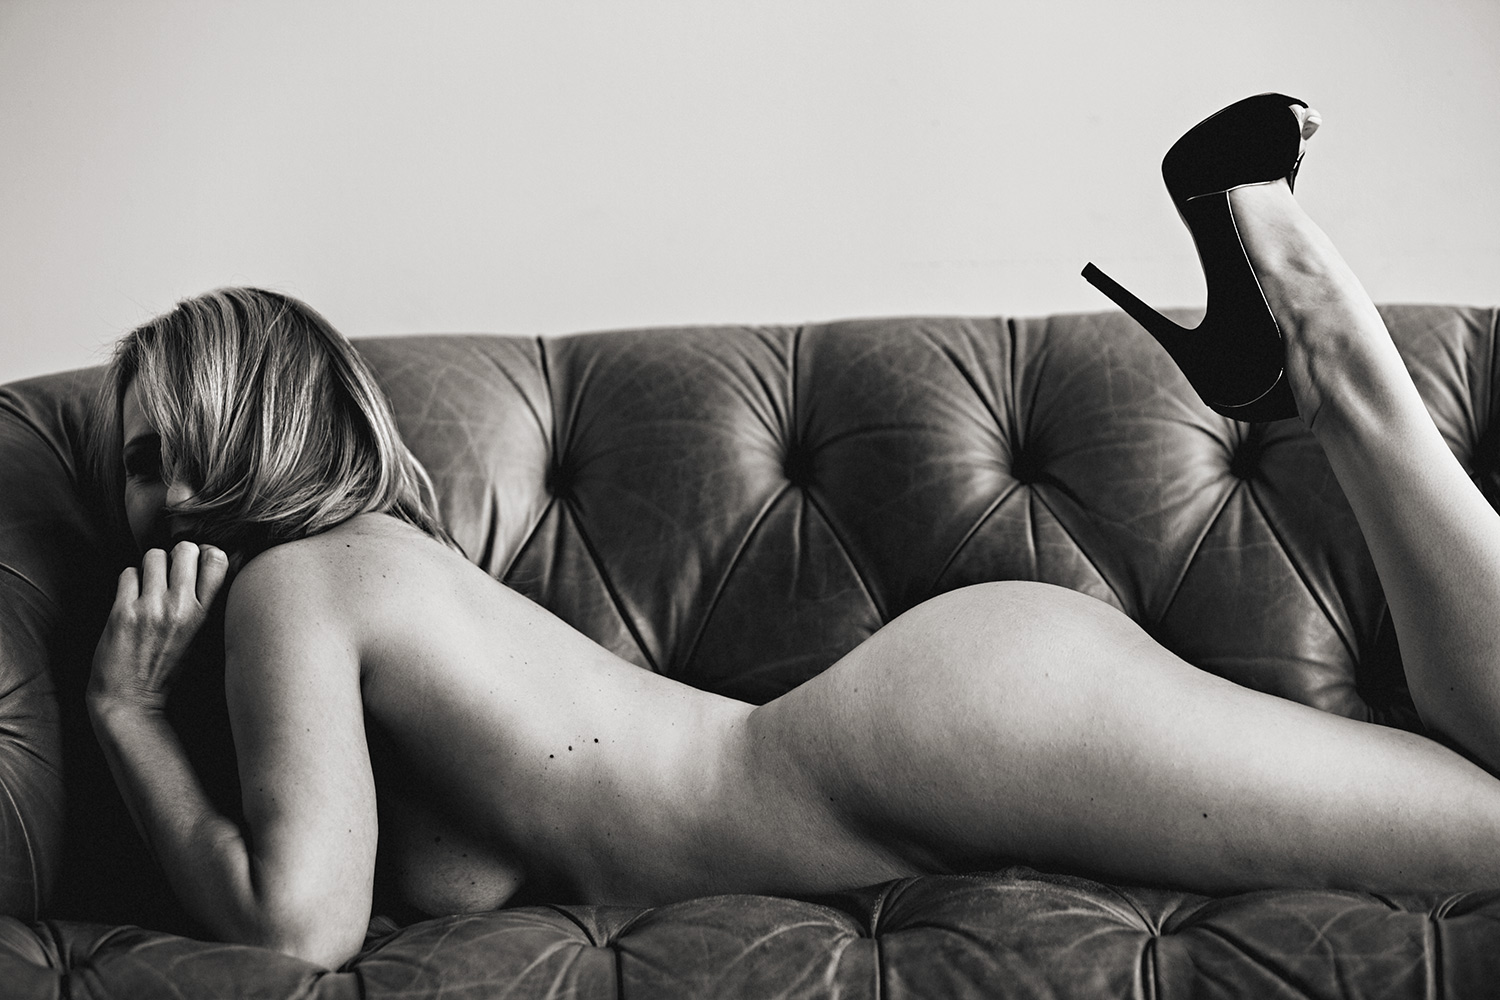 implied nude boudoir boston photographer